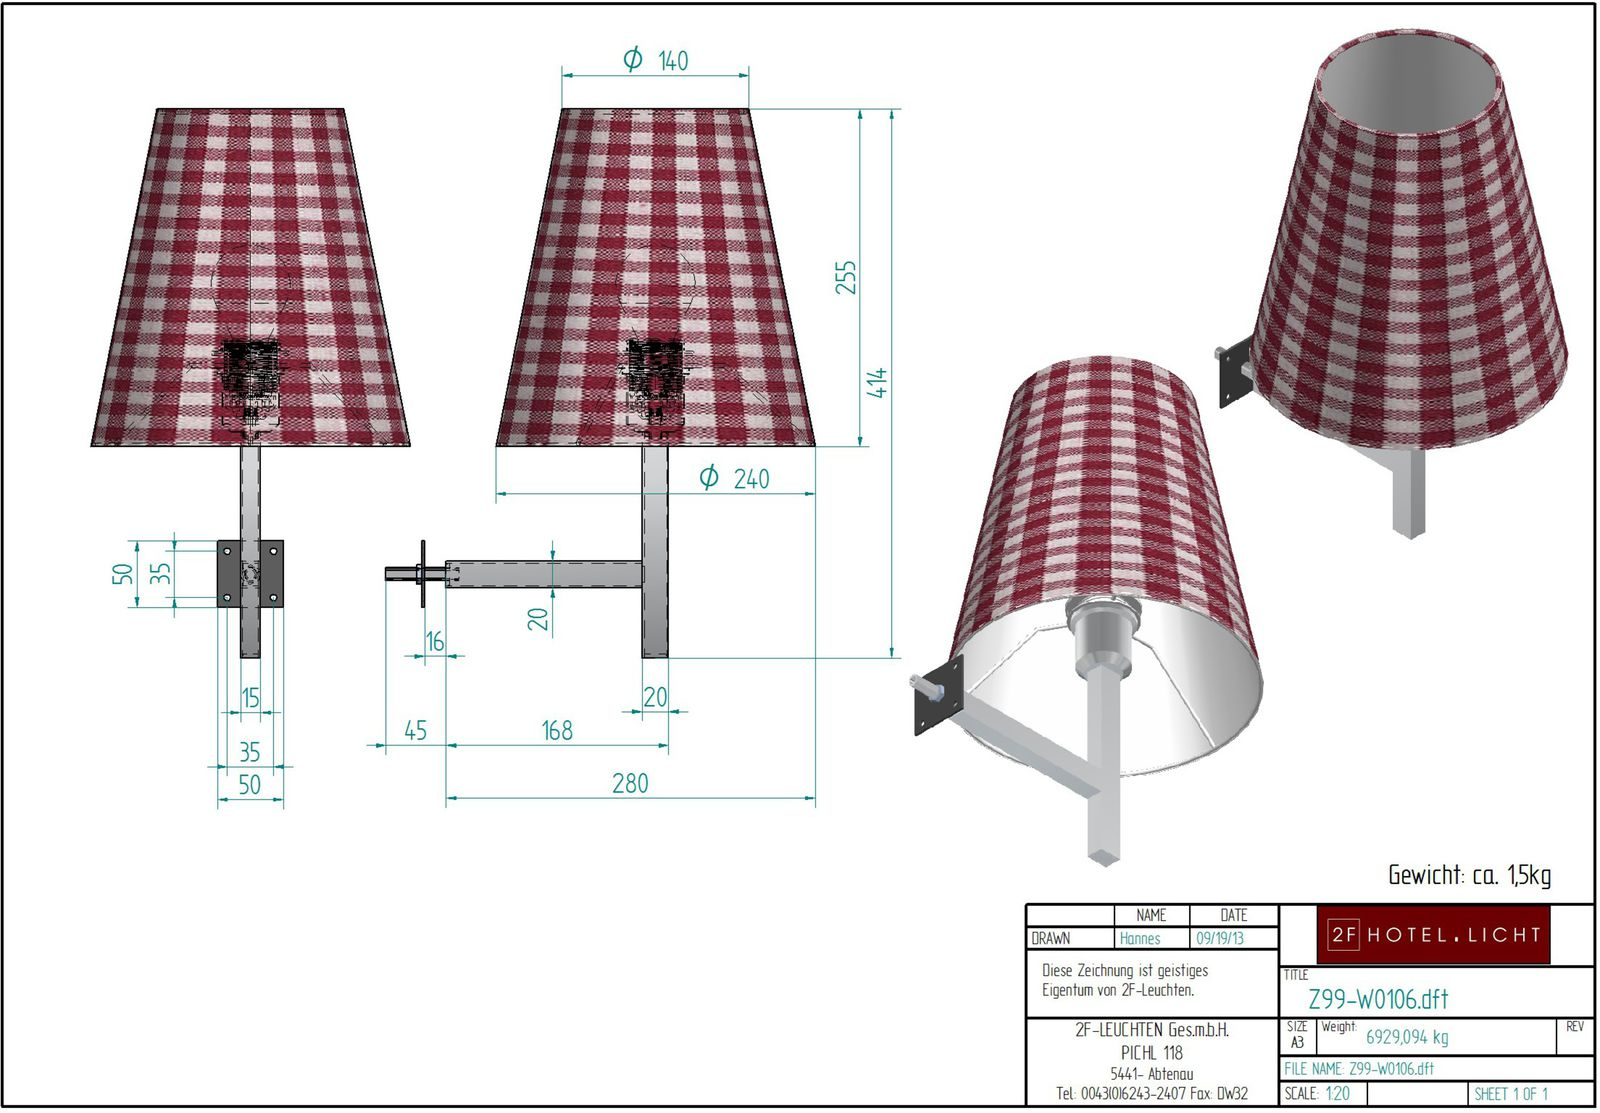 wall lamp, lenght=280mm, wide=240mm, height=415mm, surface: brushed nickel, technical details: 1xE27, 1x60W + cable 2m